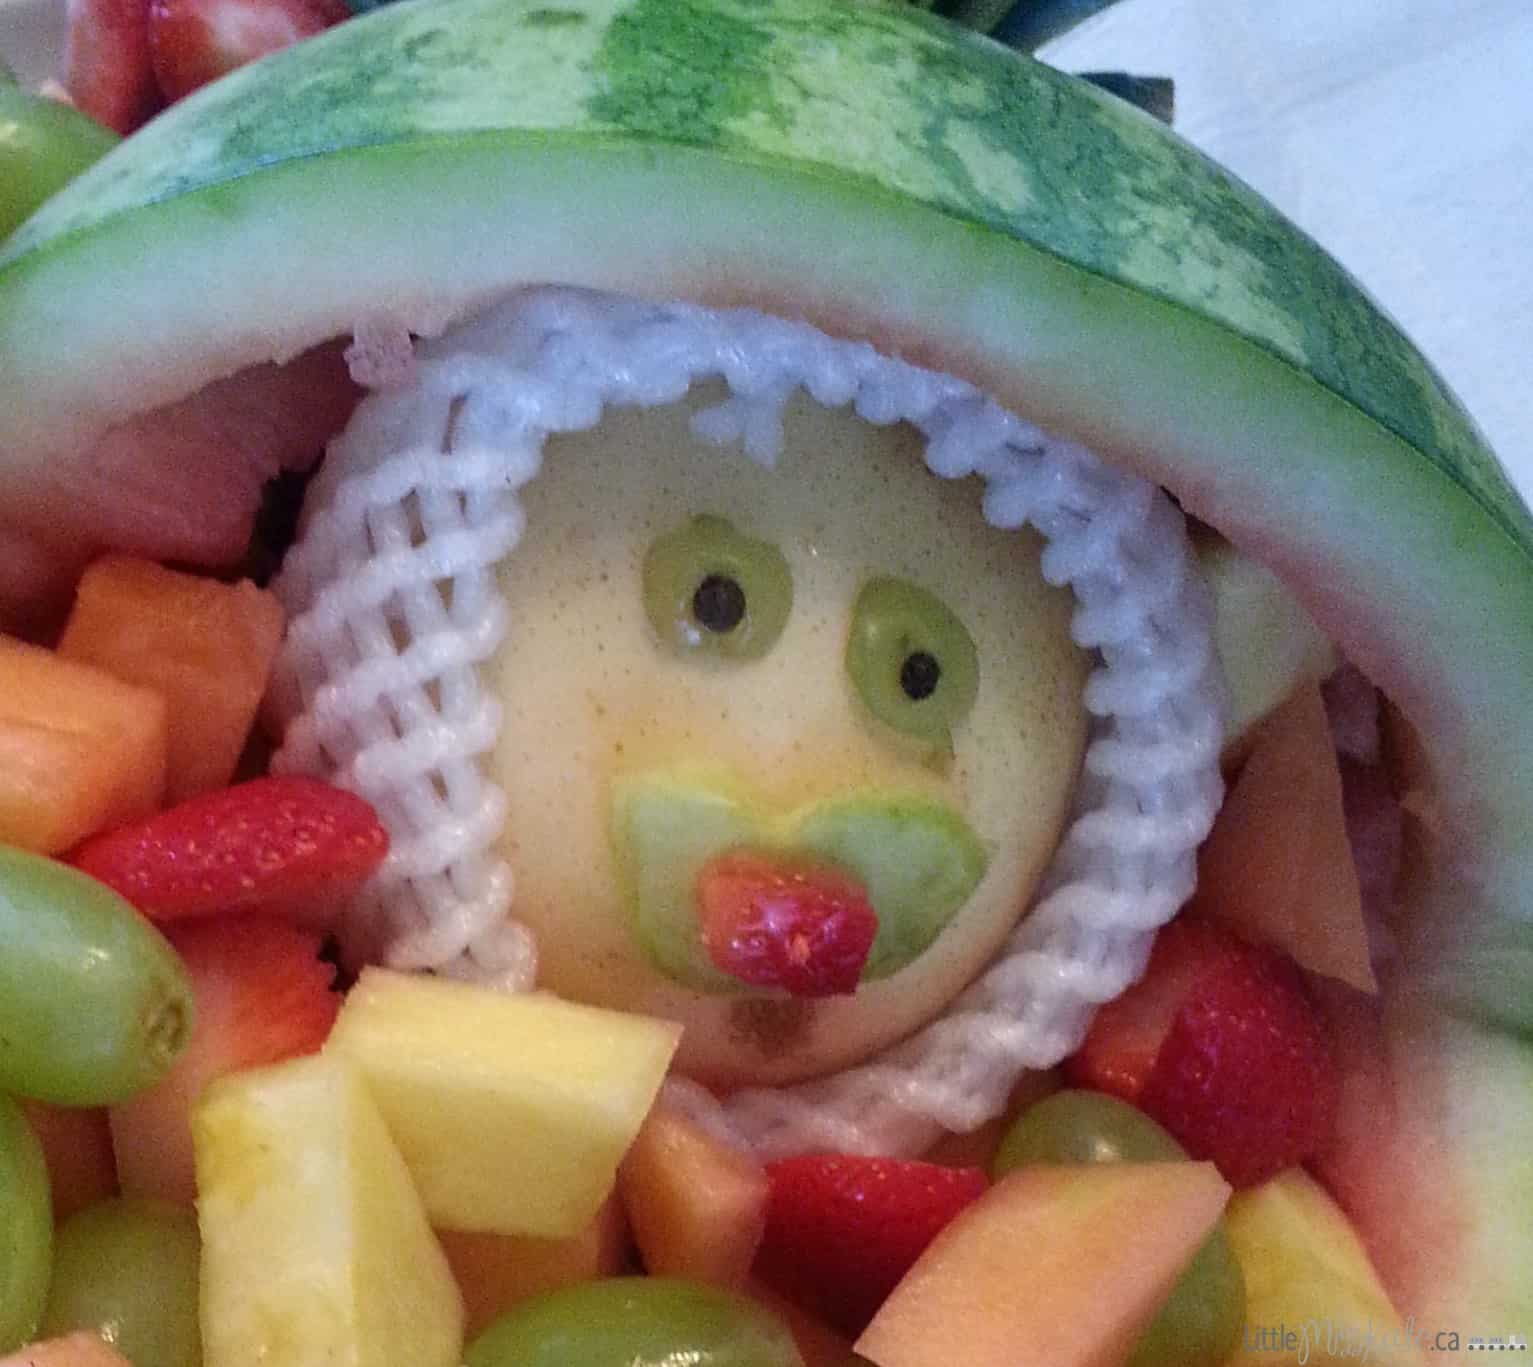 Baby Shower Food Ideas: Baby Carriage Fruit Salad Bowl - Little Miss ...